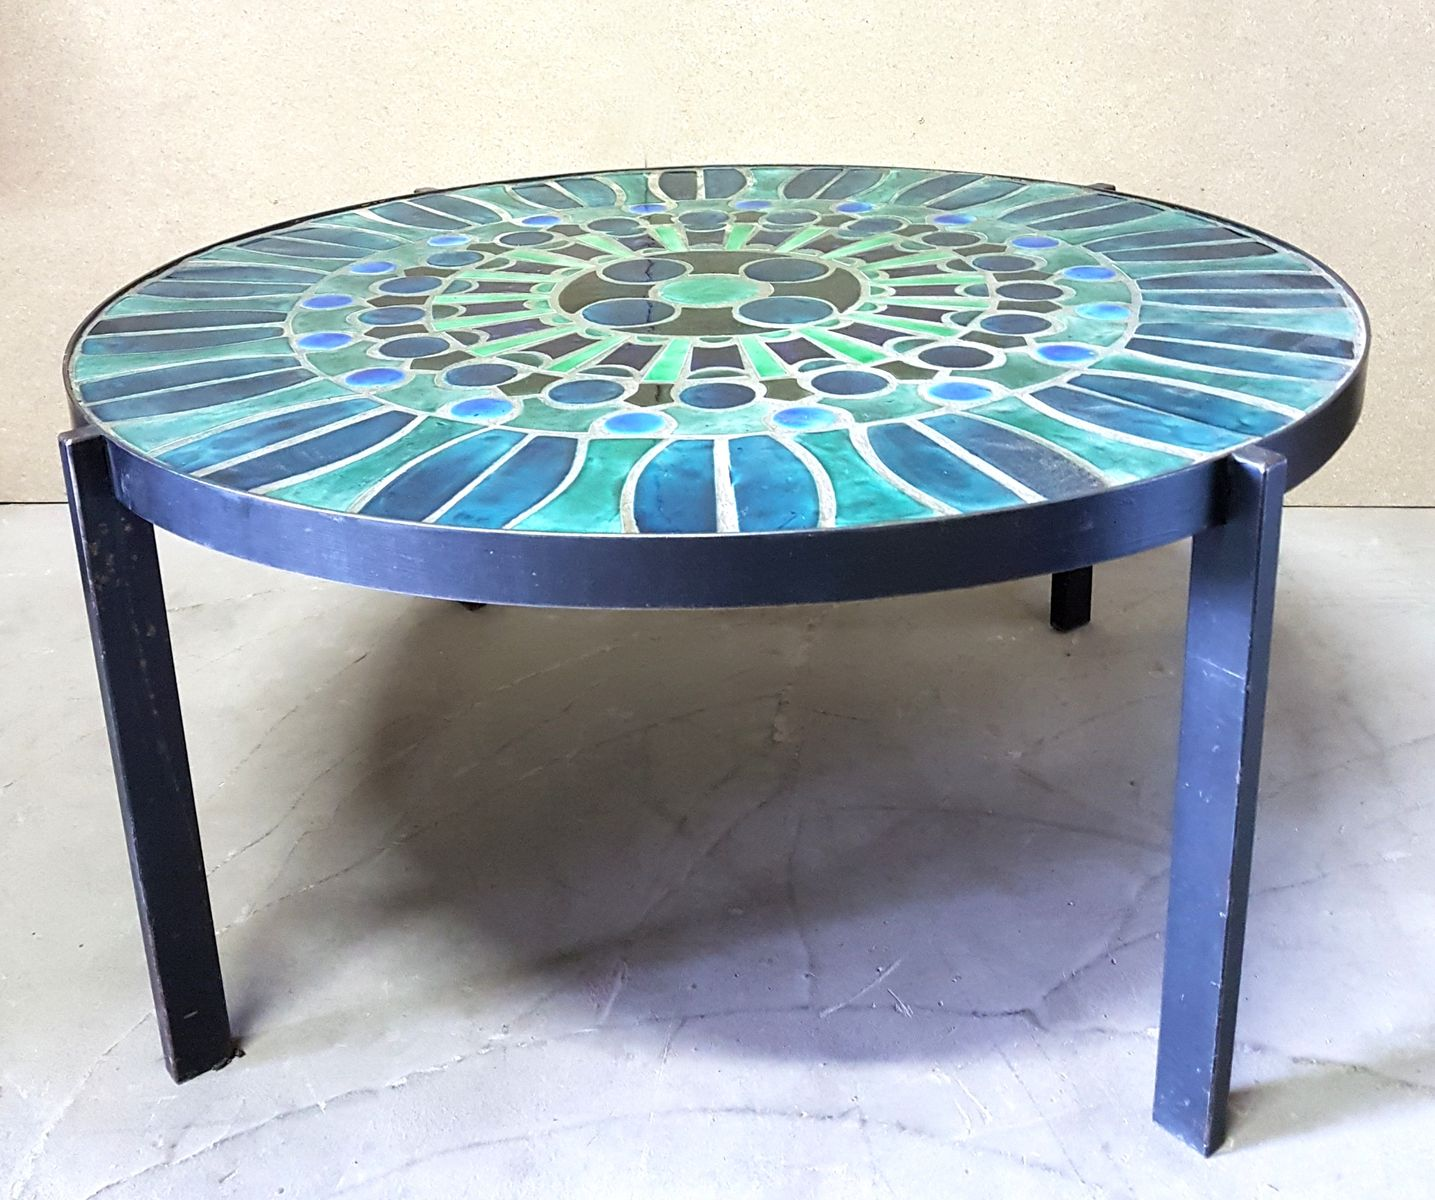 Vintage Glass Mosaic Coffee Table